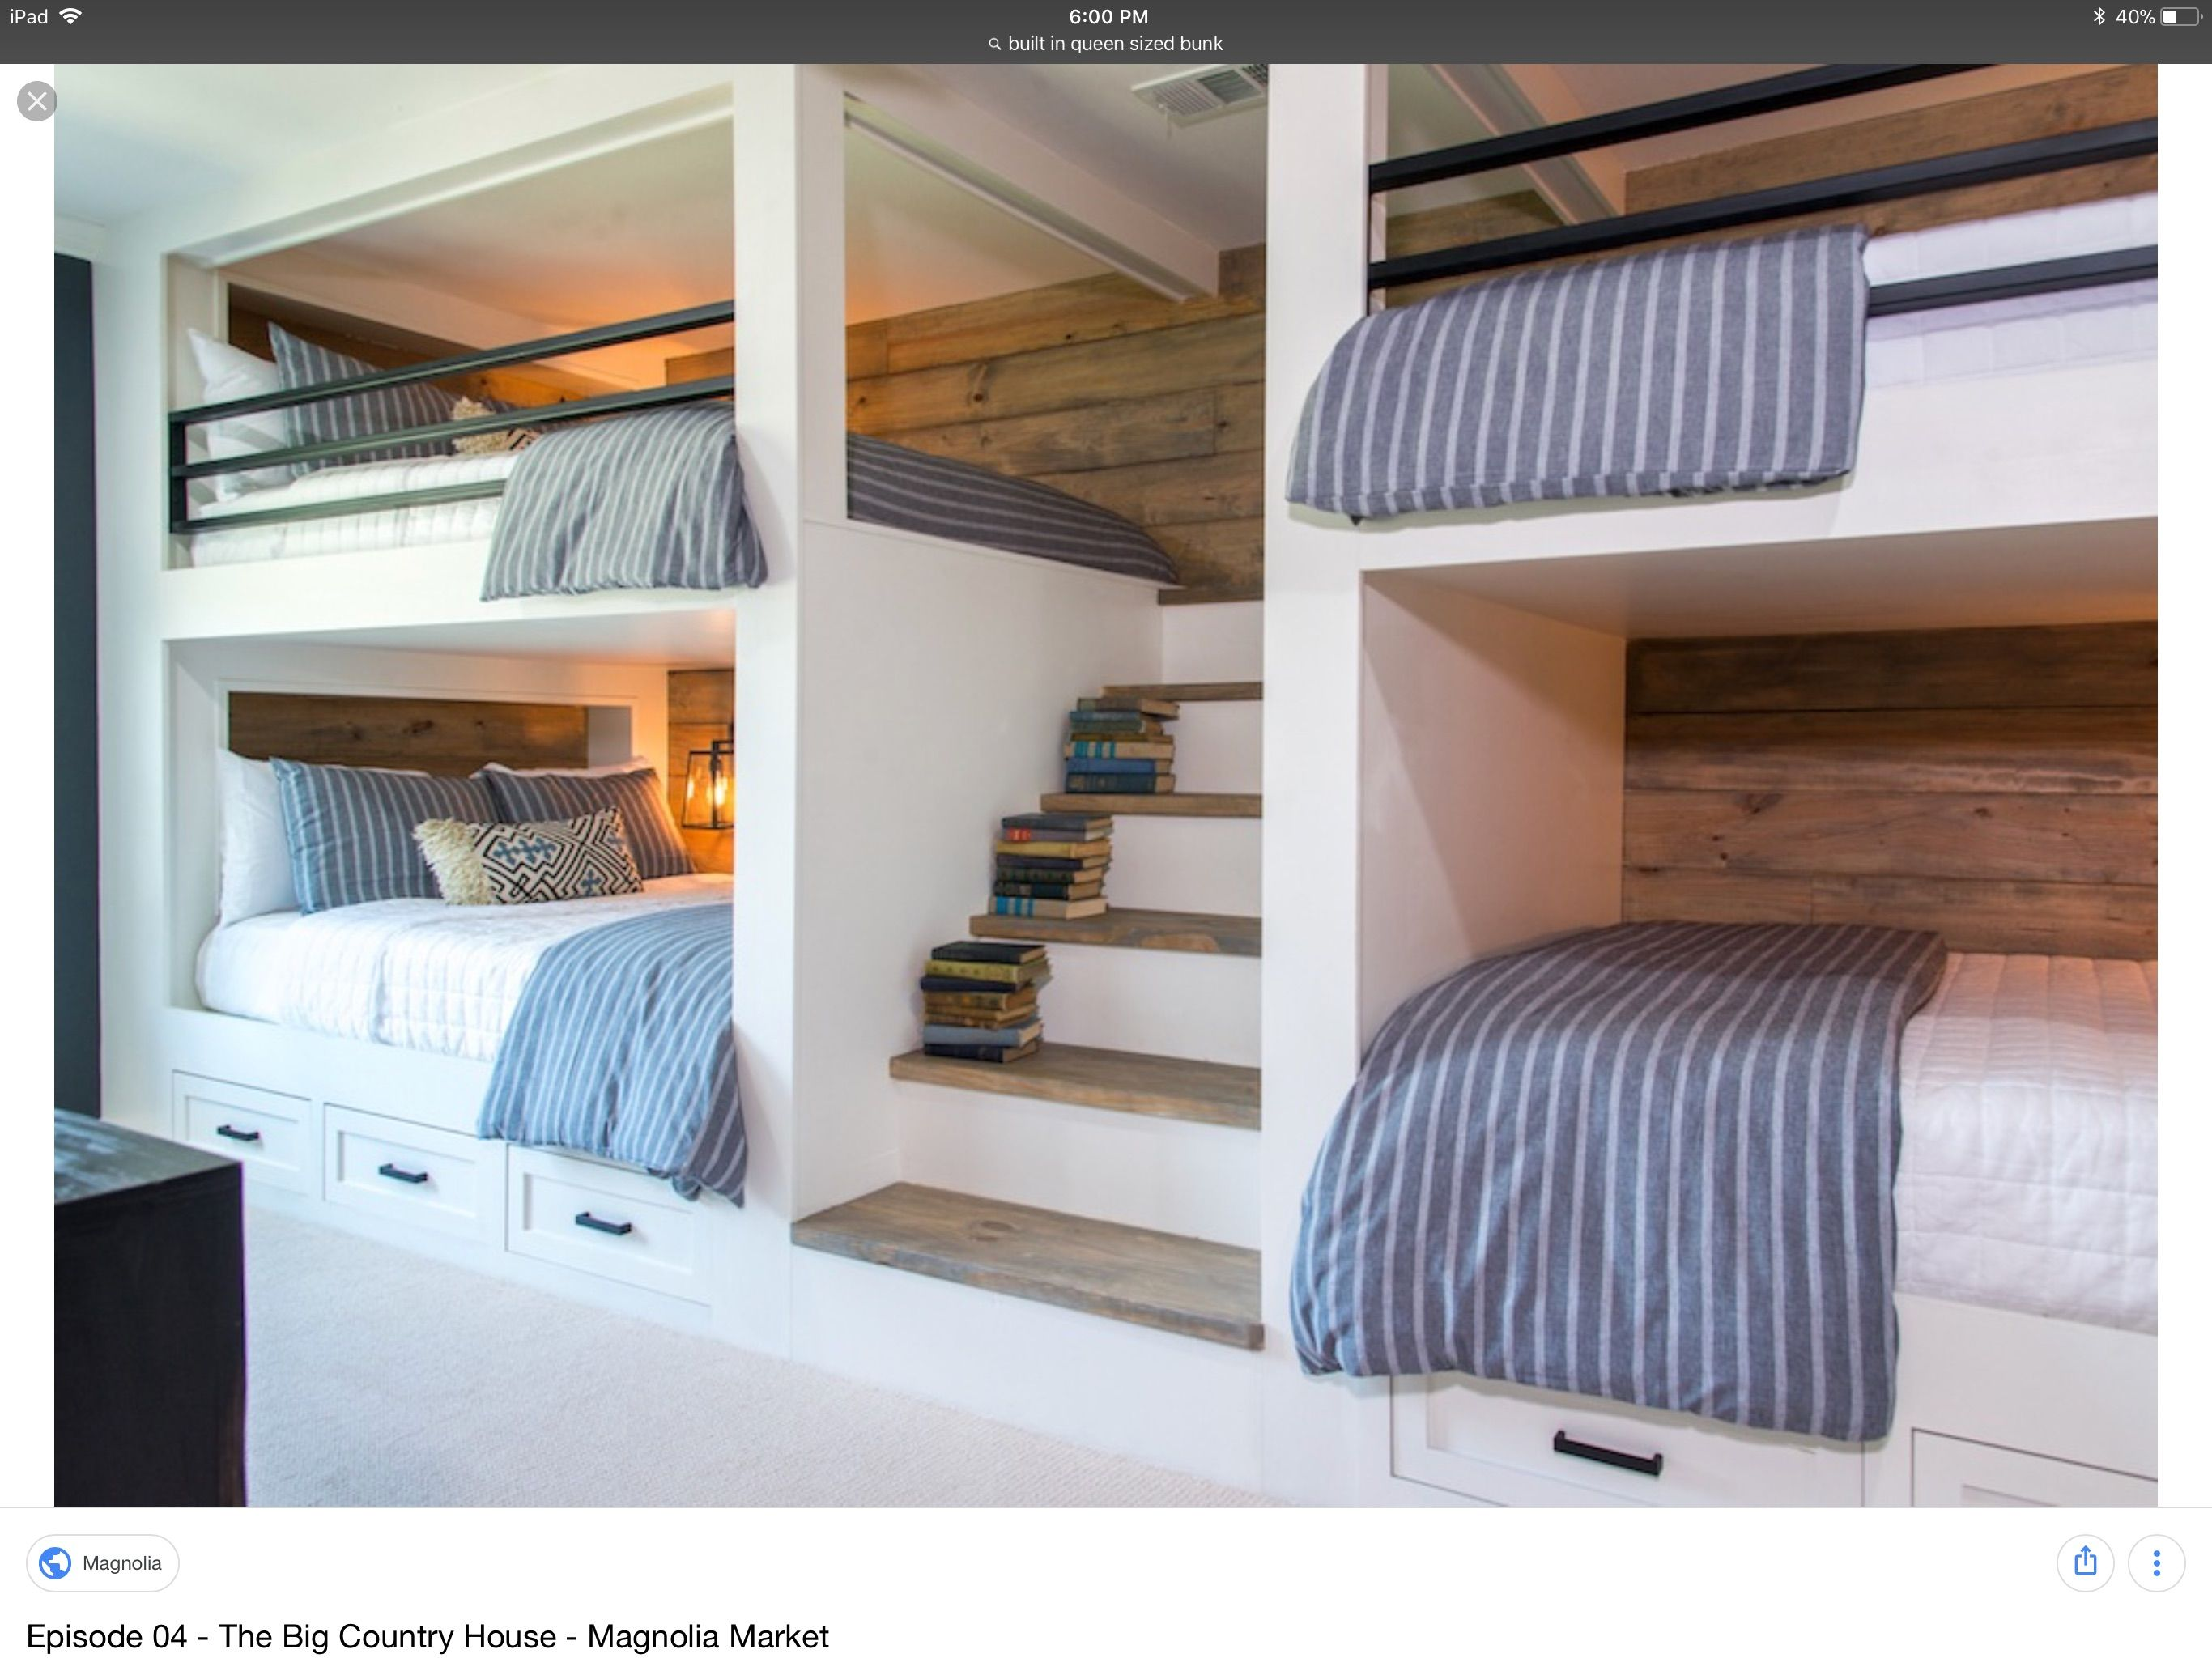 Pin By Gg Taylor On Home Decor In 2018 Pinterest Bunk Rooms